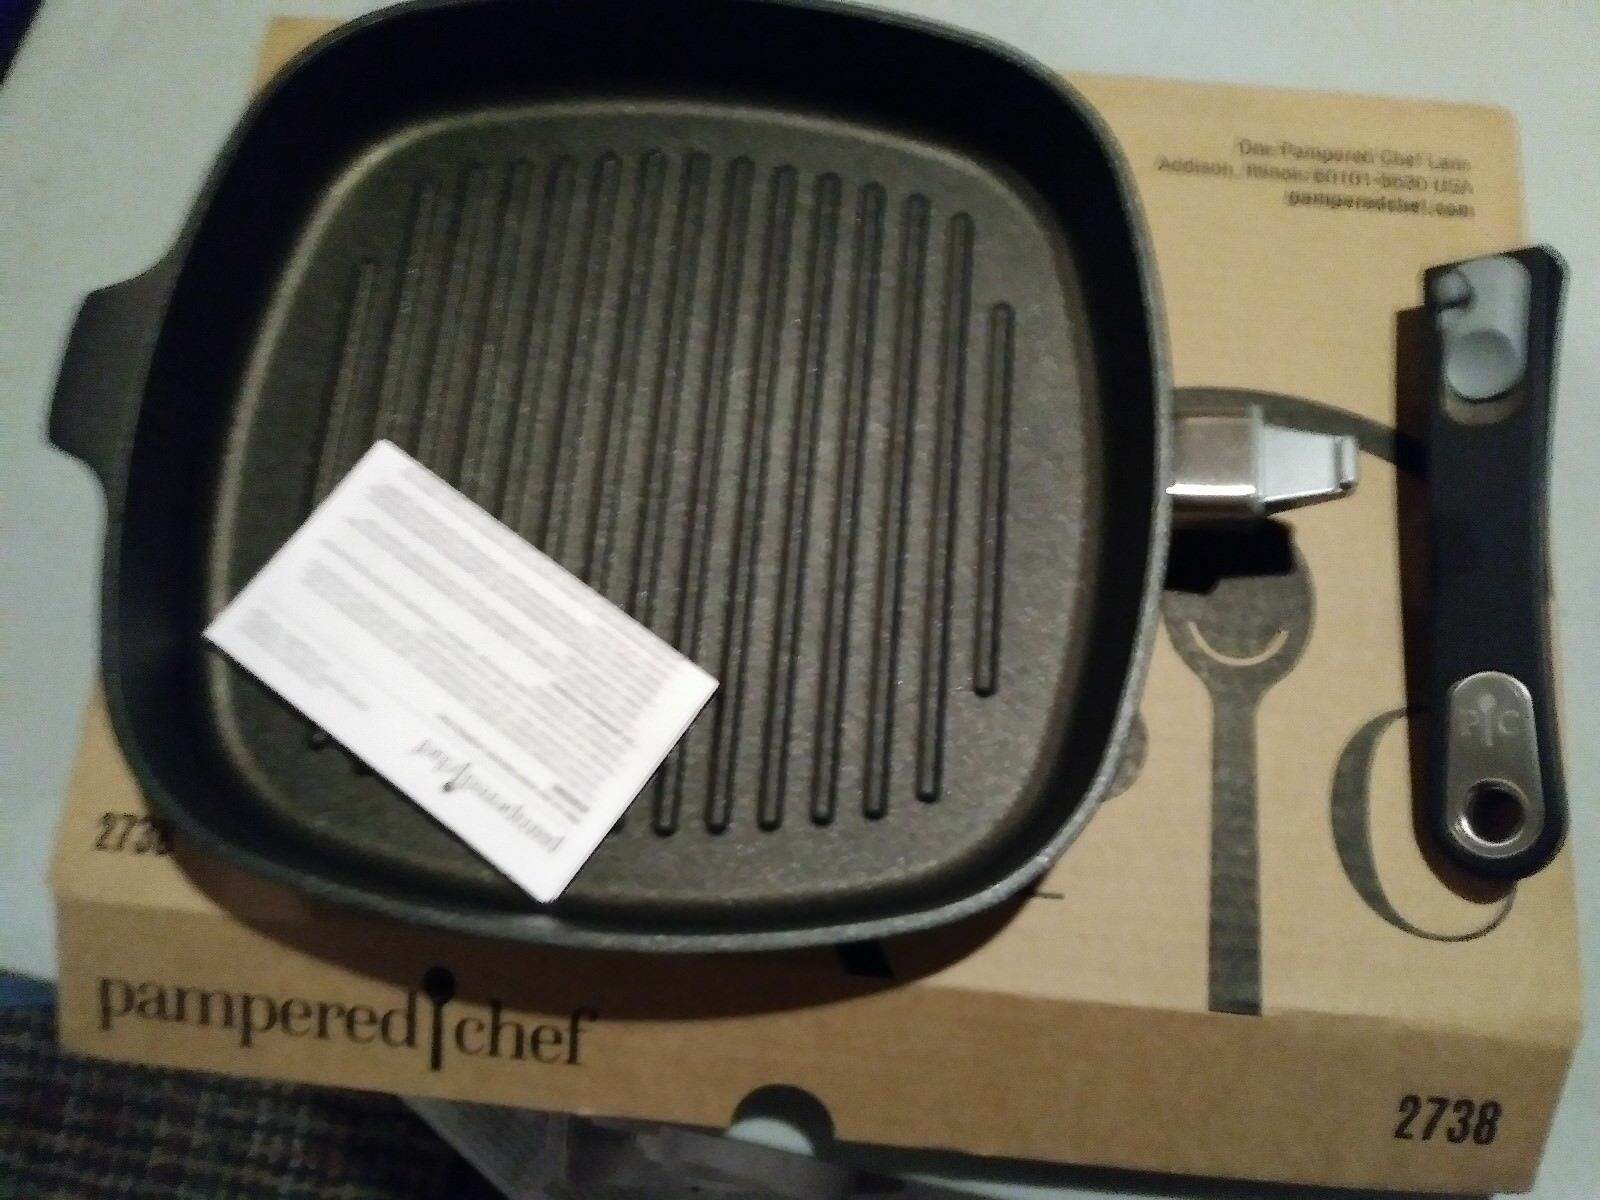 Pamperouge Chef Comme neuf condition-Grill Pan livraison gratuite  2738